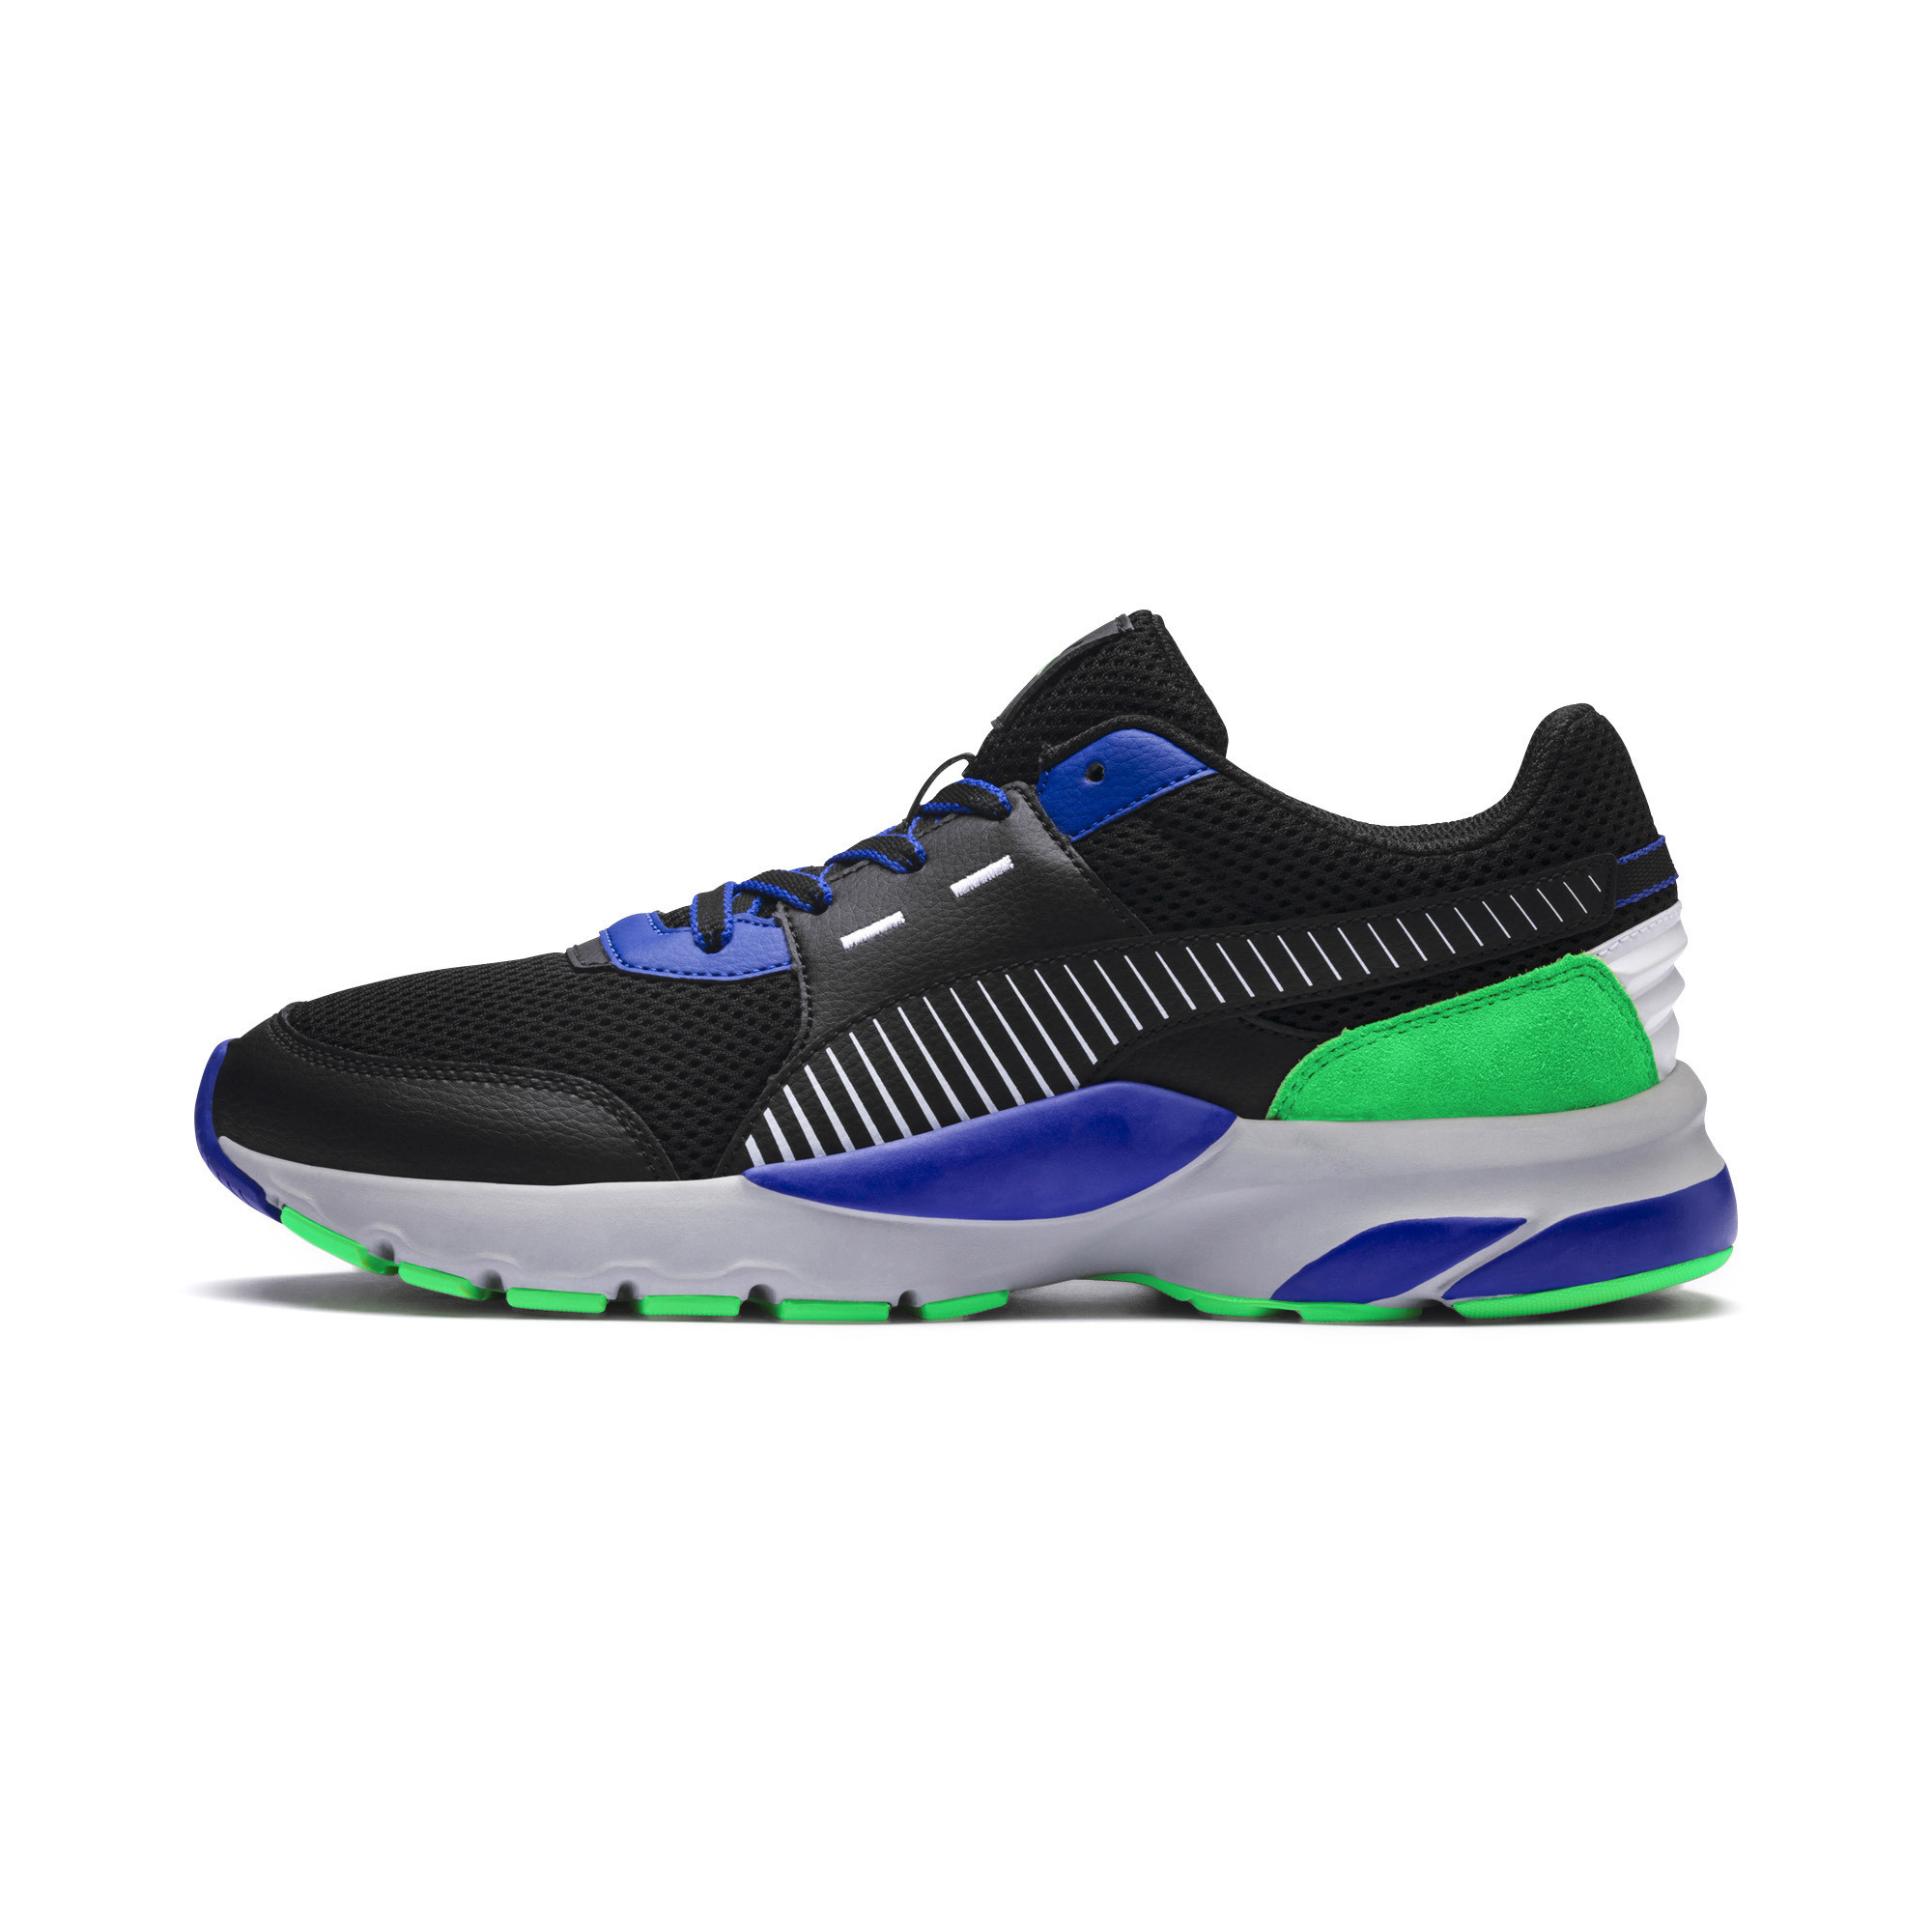 PUMA-Future-Runner-Premium-Men-039-s-Running-Shoes-Men-Shoe-Basics thumbnail 10